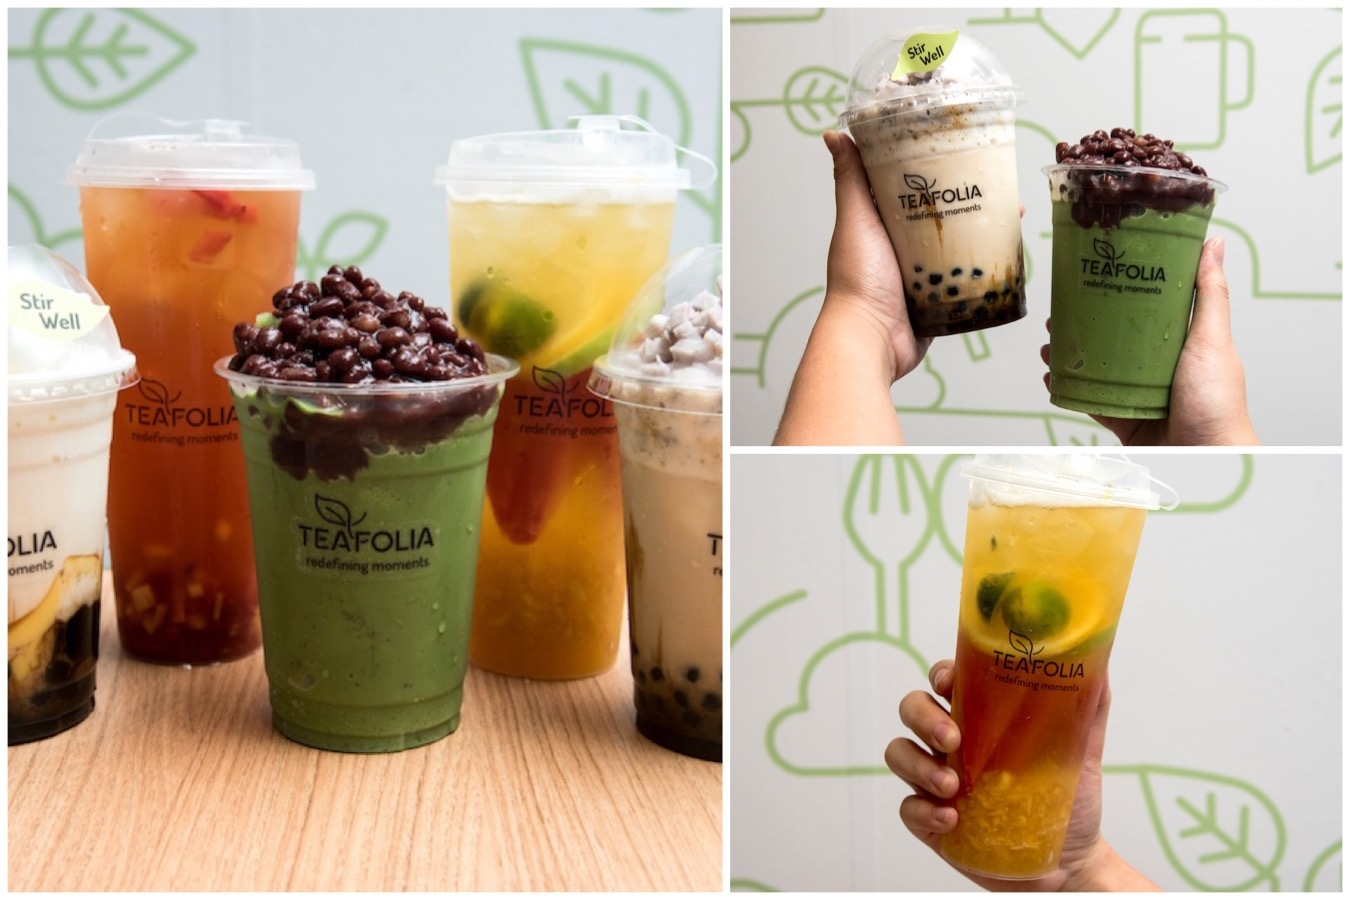 Teafolia Booming Trend Of Fruit Tea Kiosks In Singapore